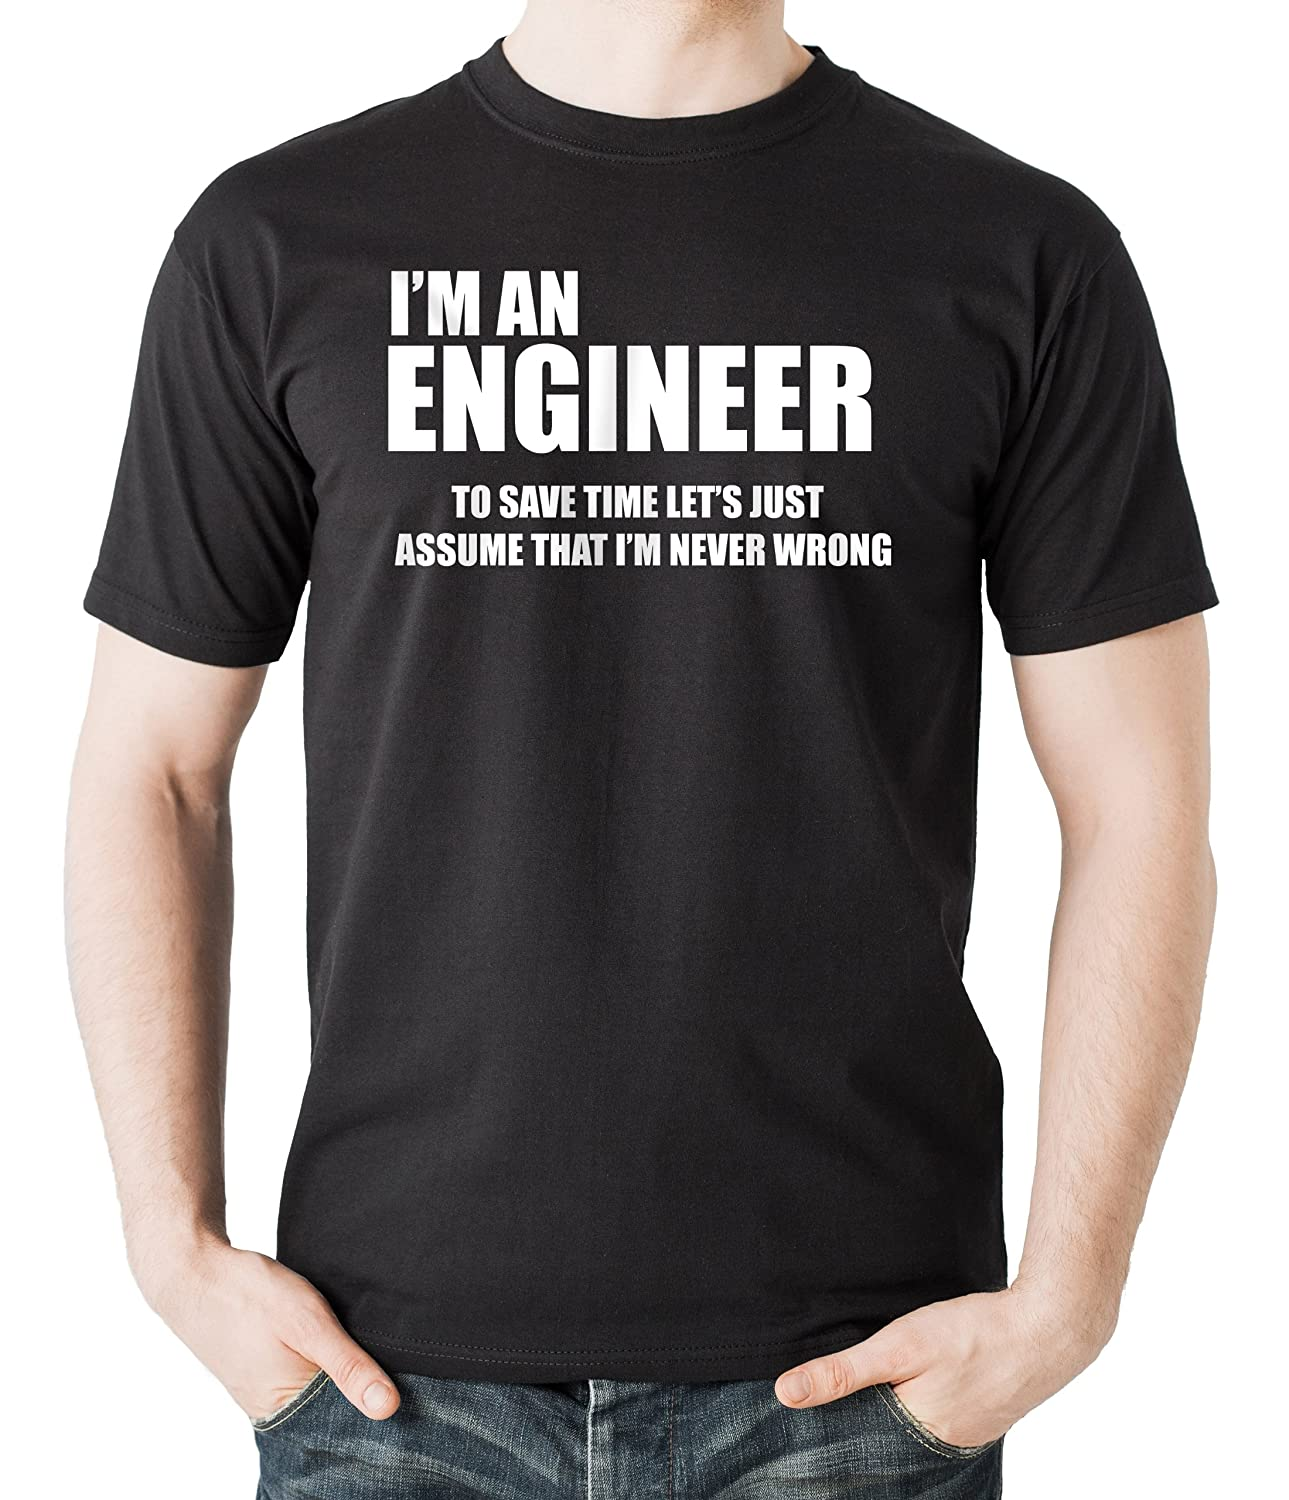 Computer engineering t shirts images for T shirt design programs for pc